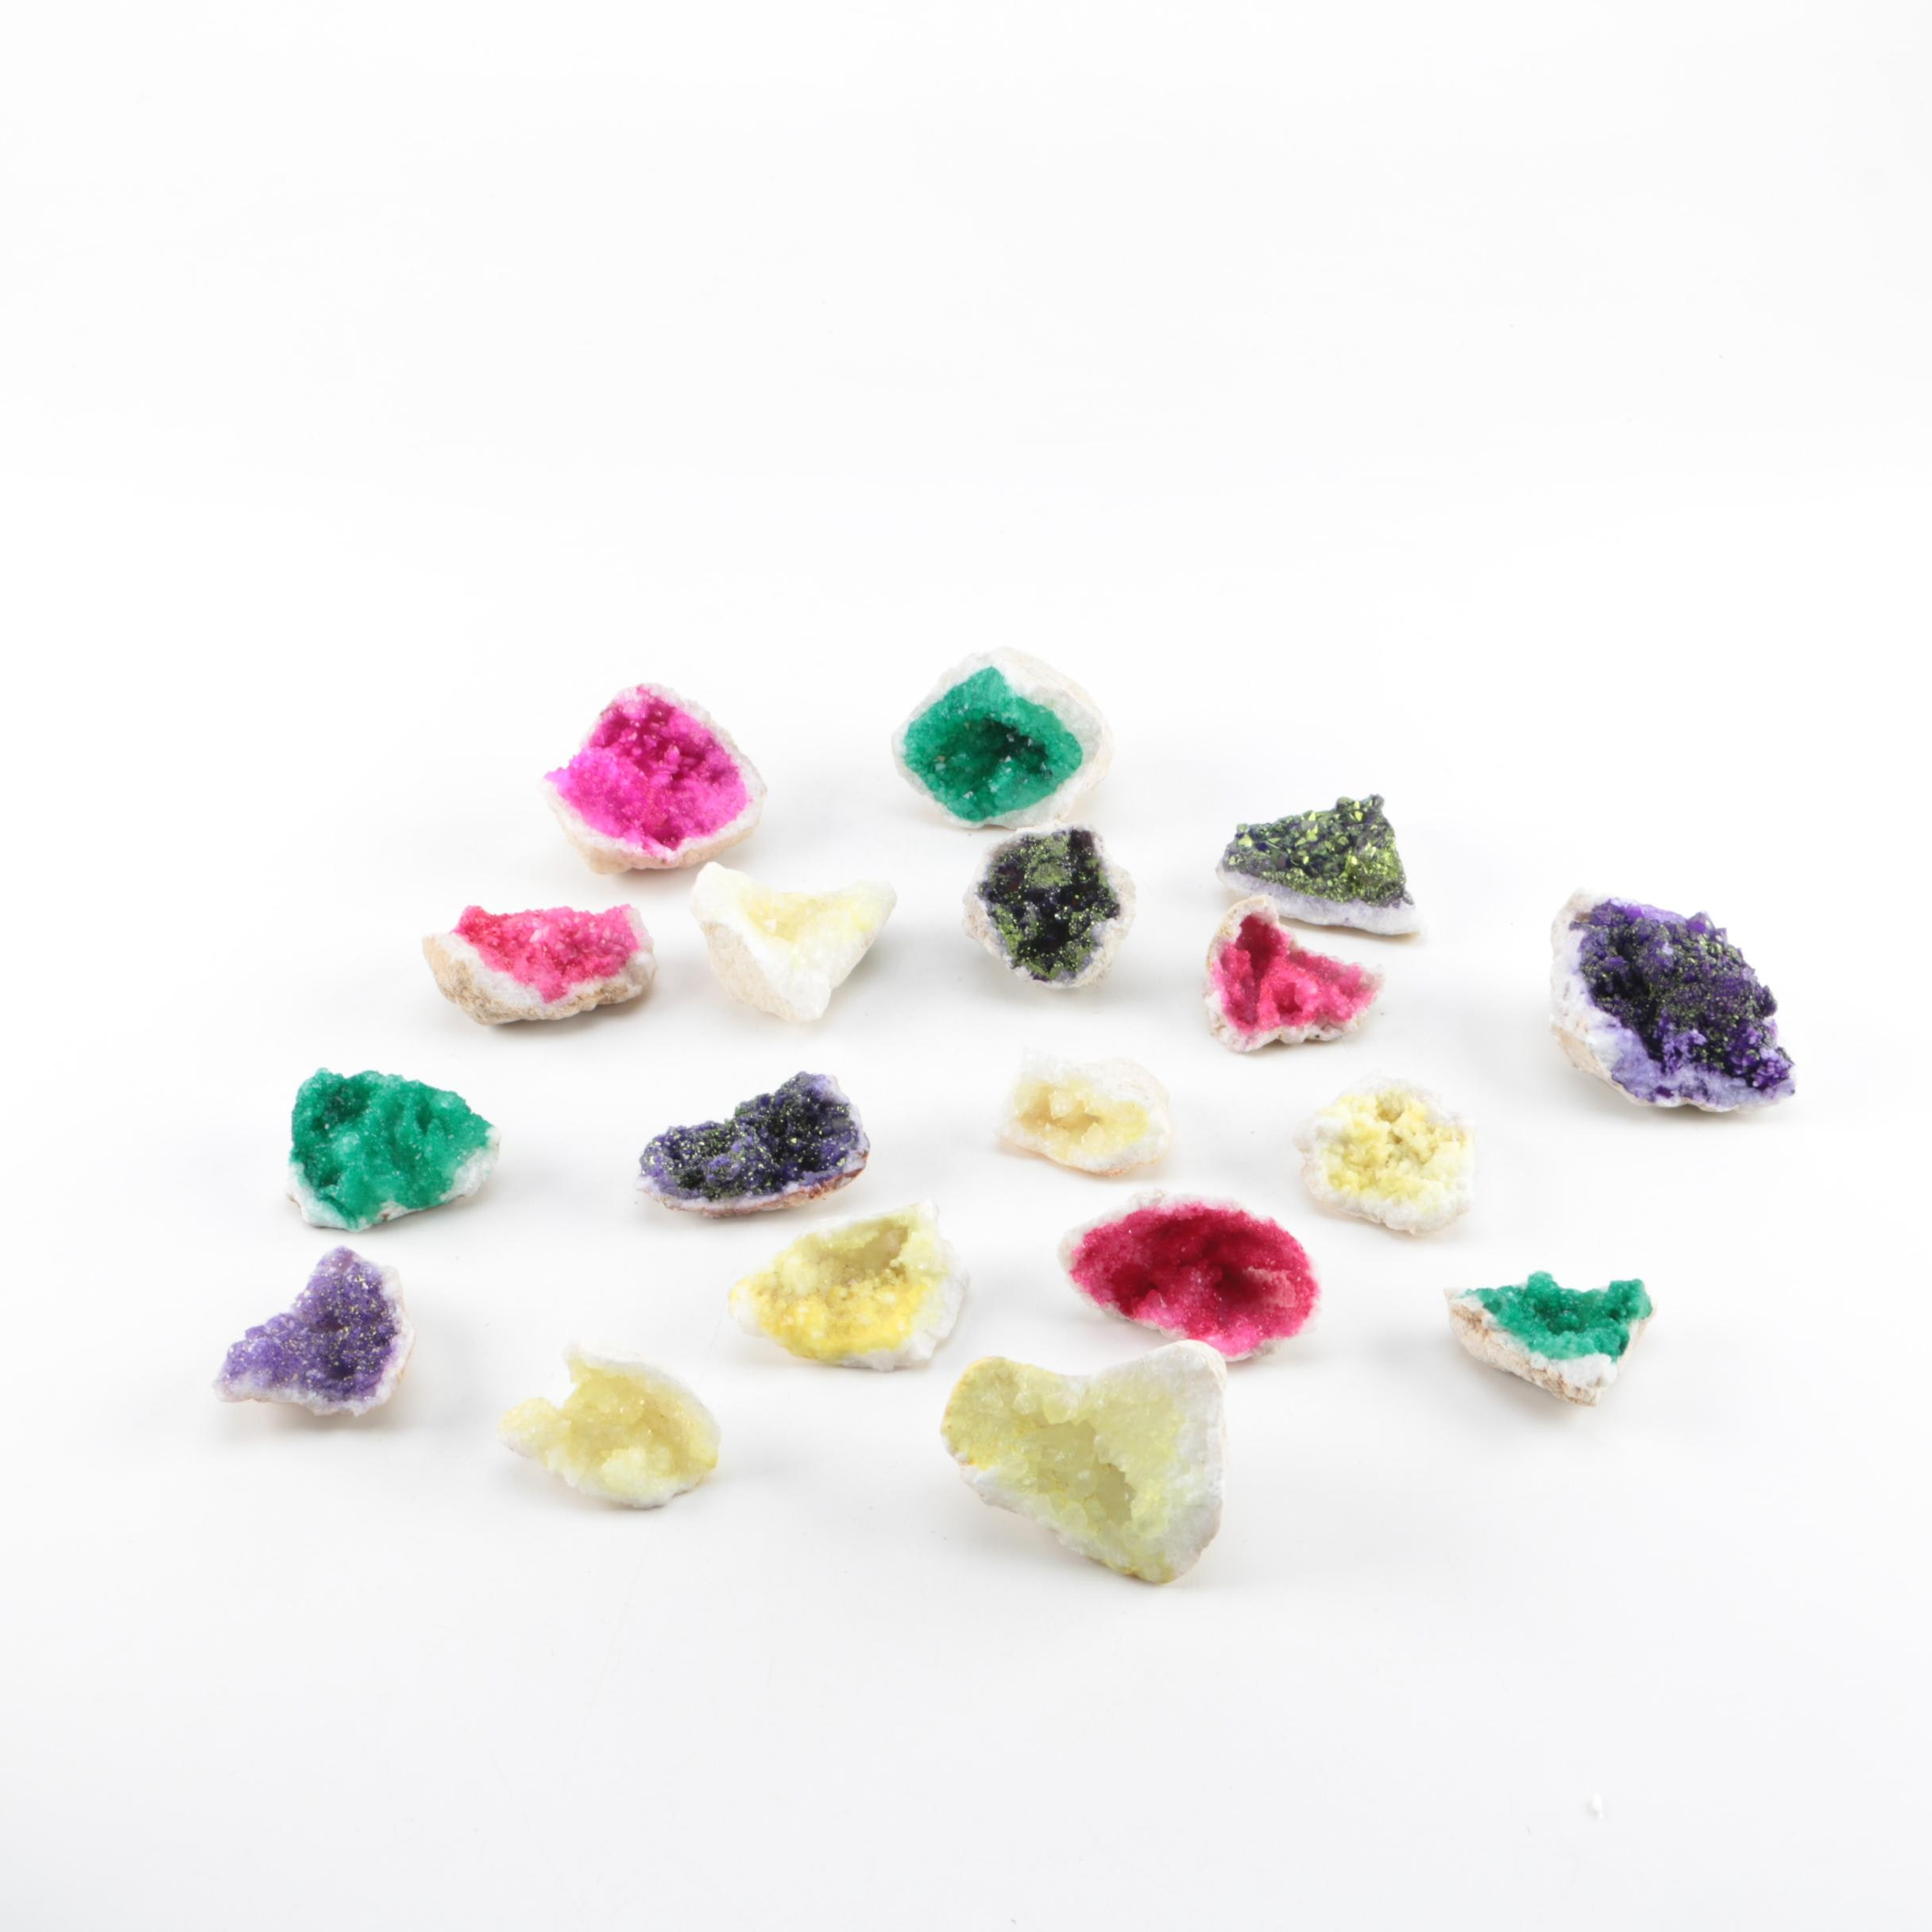 Dyed Quartz Crystal Clusters